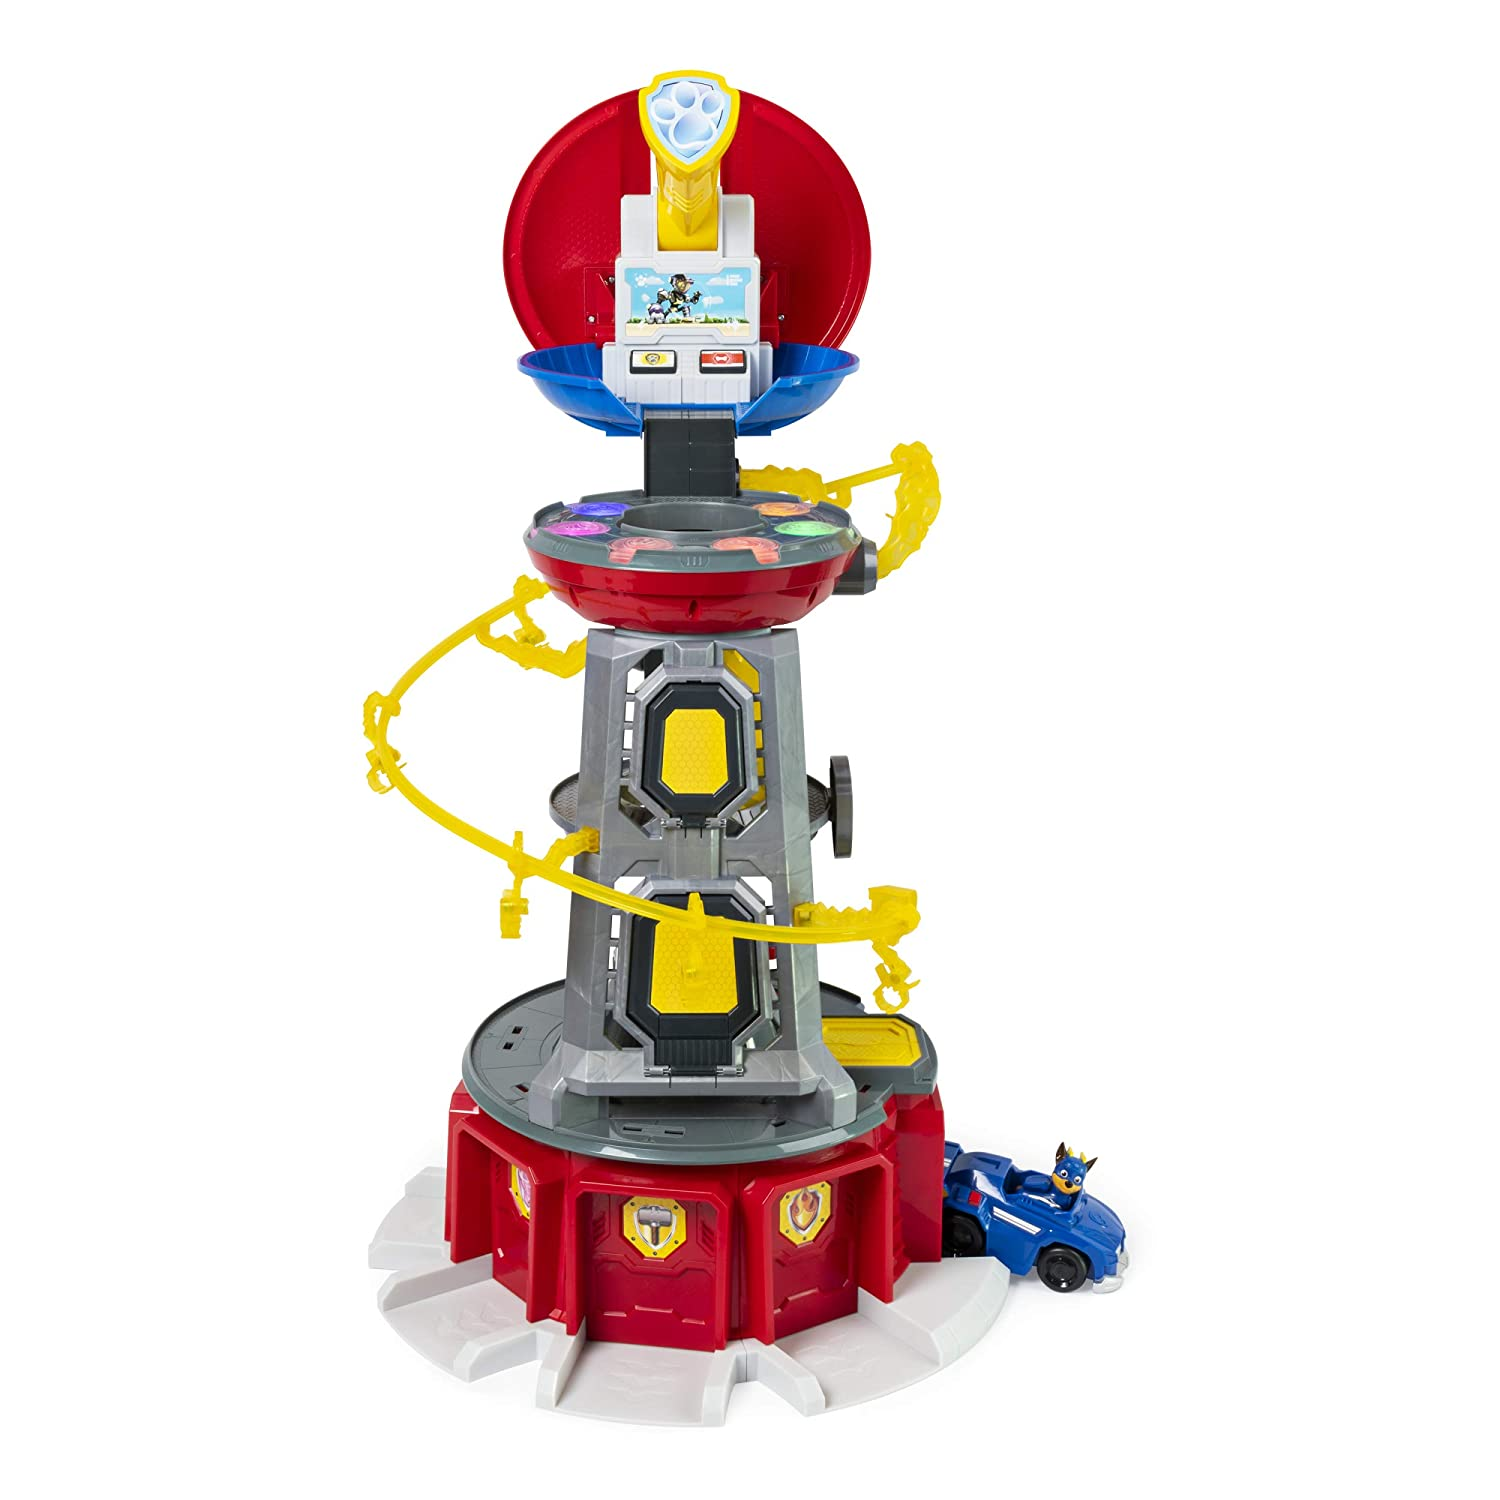 Nickelodeon PAW Patrol, Mighty Pups Super Paws Lookout Tower Playset with Lights and Sounds, for Ages 3 and Up